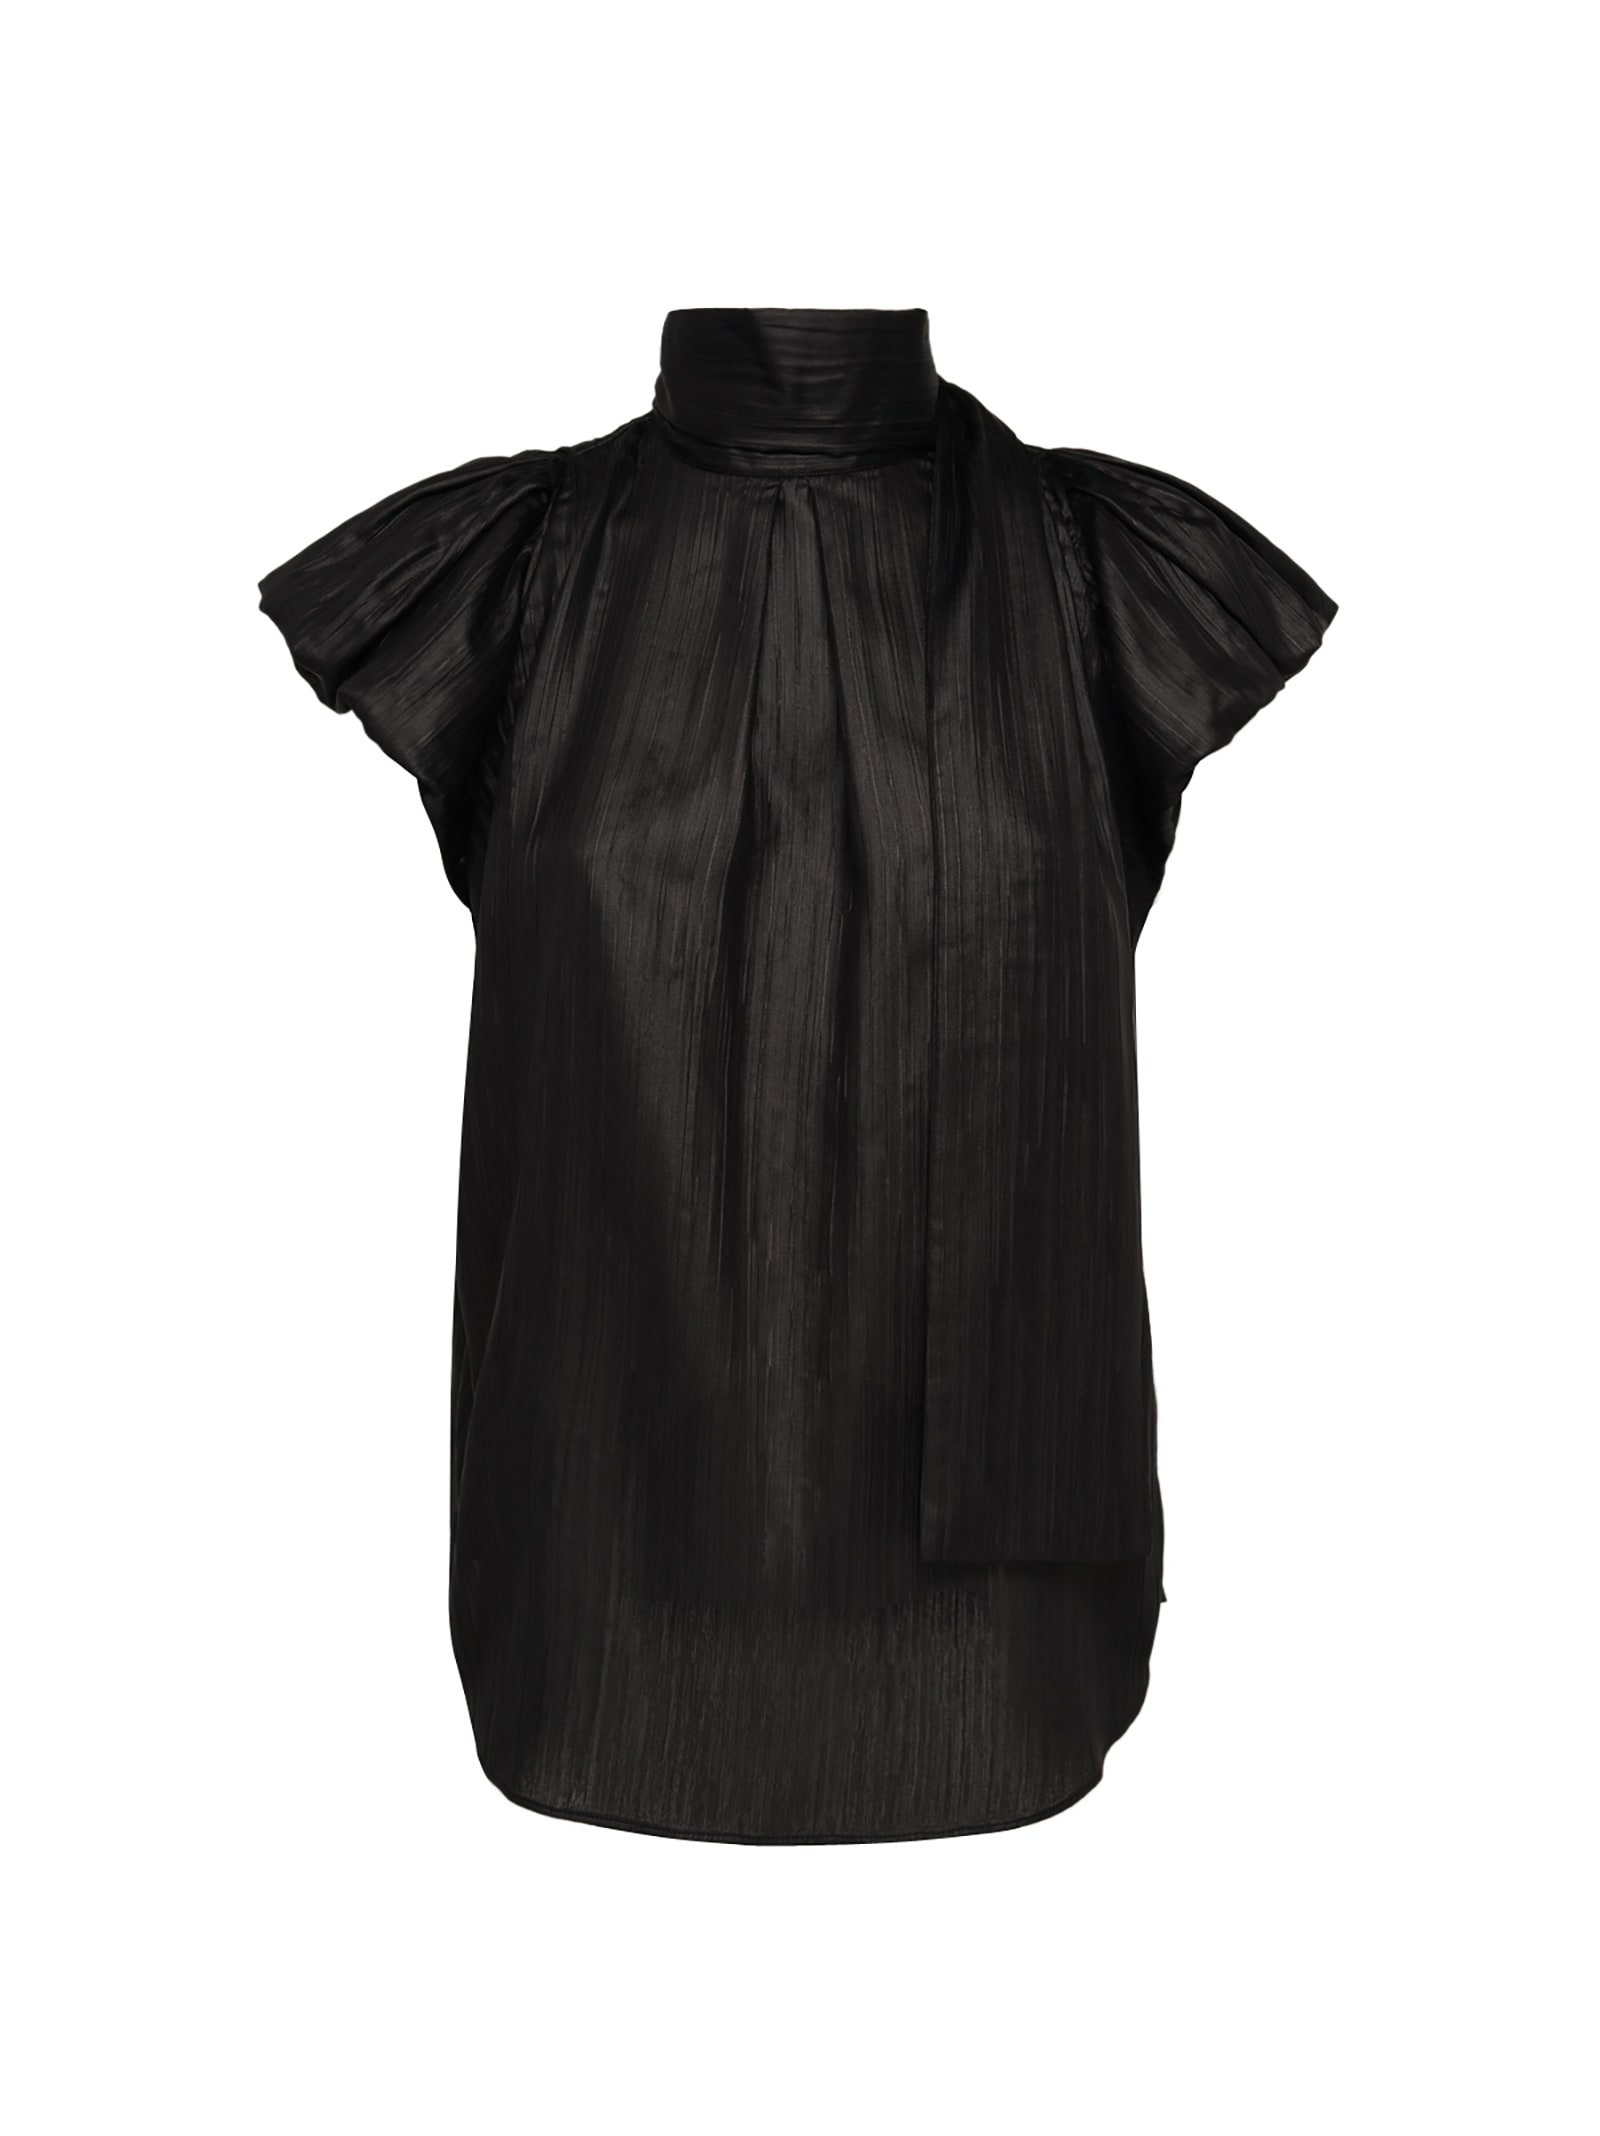 Black Top With Puffball Sleeves